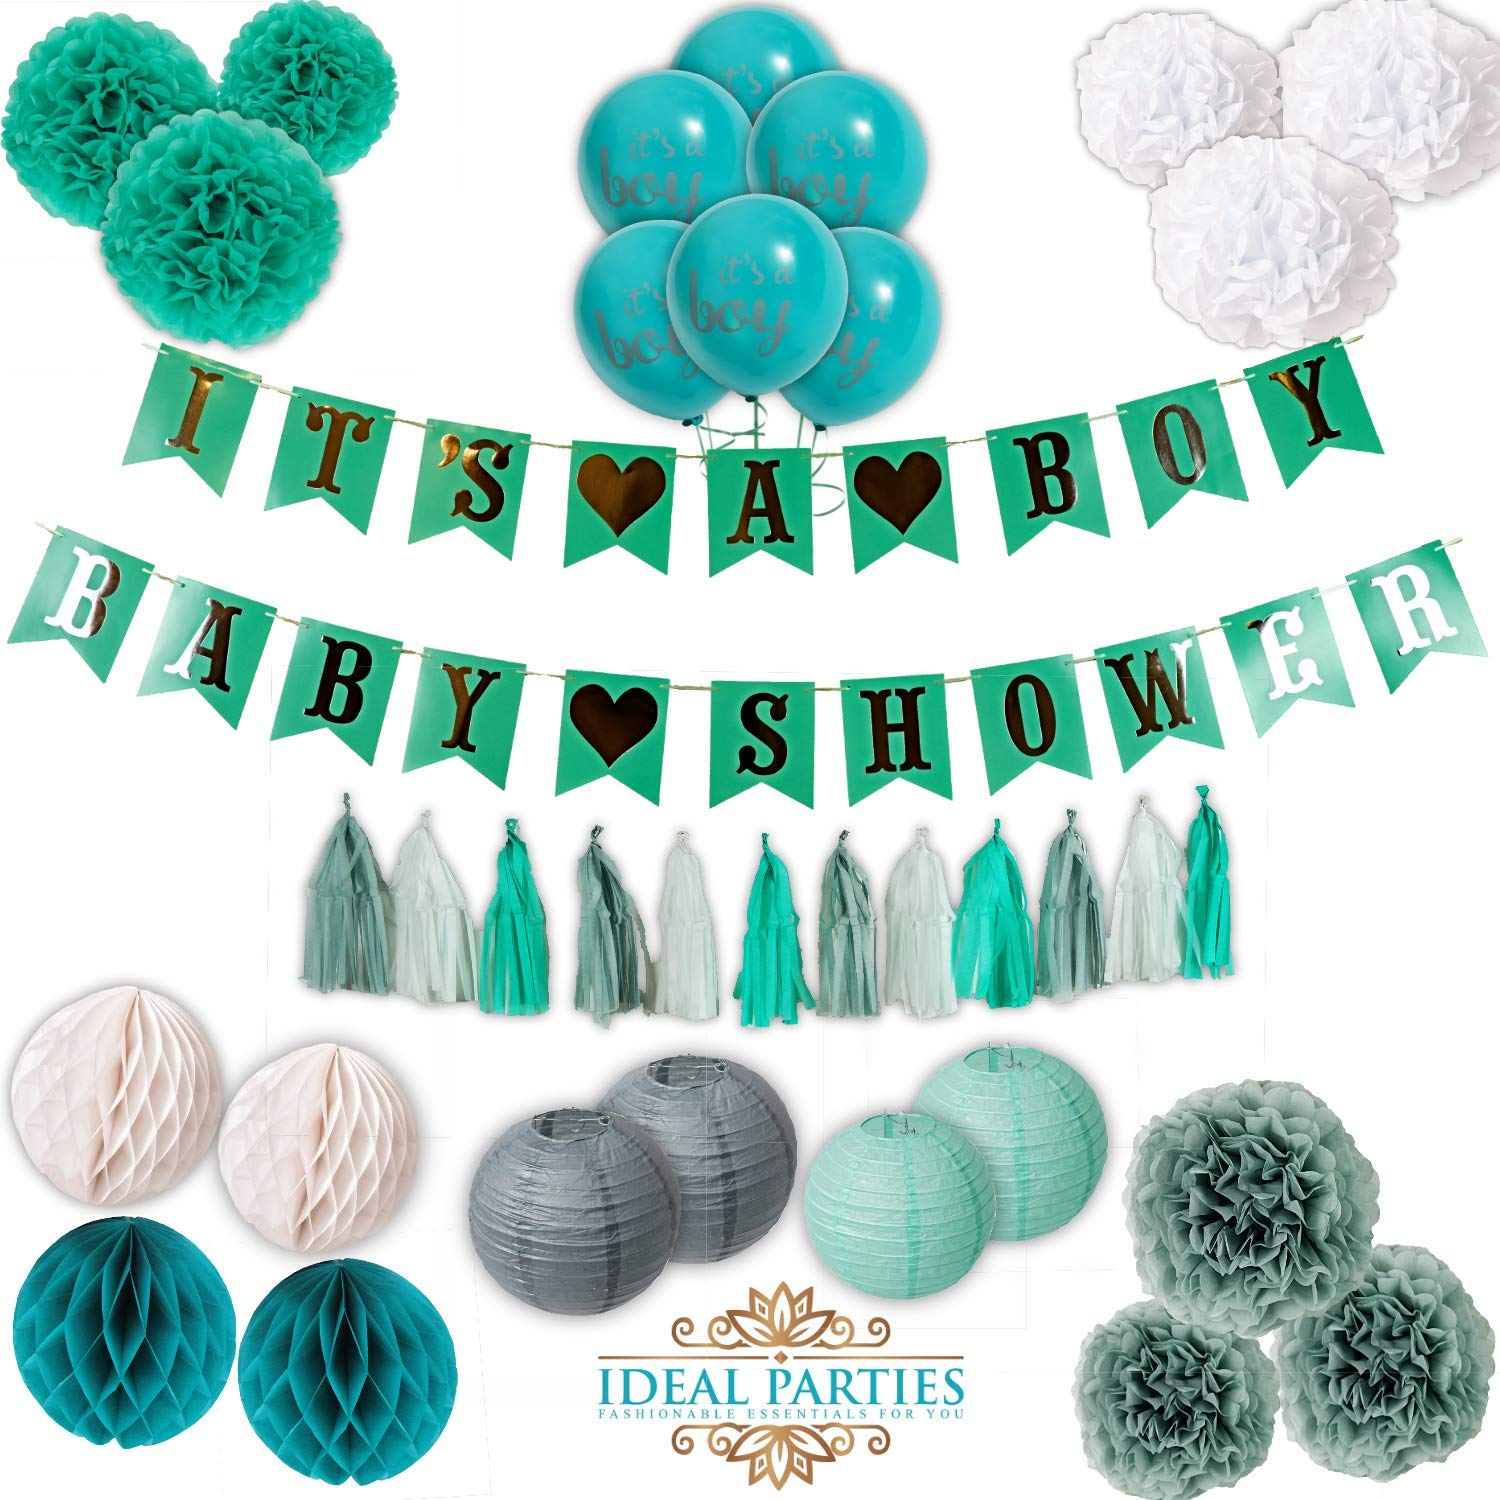 Baby Shower Decorations for Boy, Teal/Mint/Turquoise Easy Set up Flower pom poms, It's a Boy Banners, Balloons, Honey Comb Balls, Lanterns in Teal/Grey/Silver/White Party Unique Baby Shower Set!!